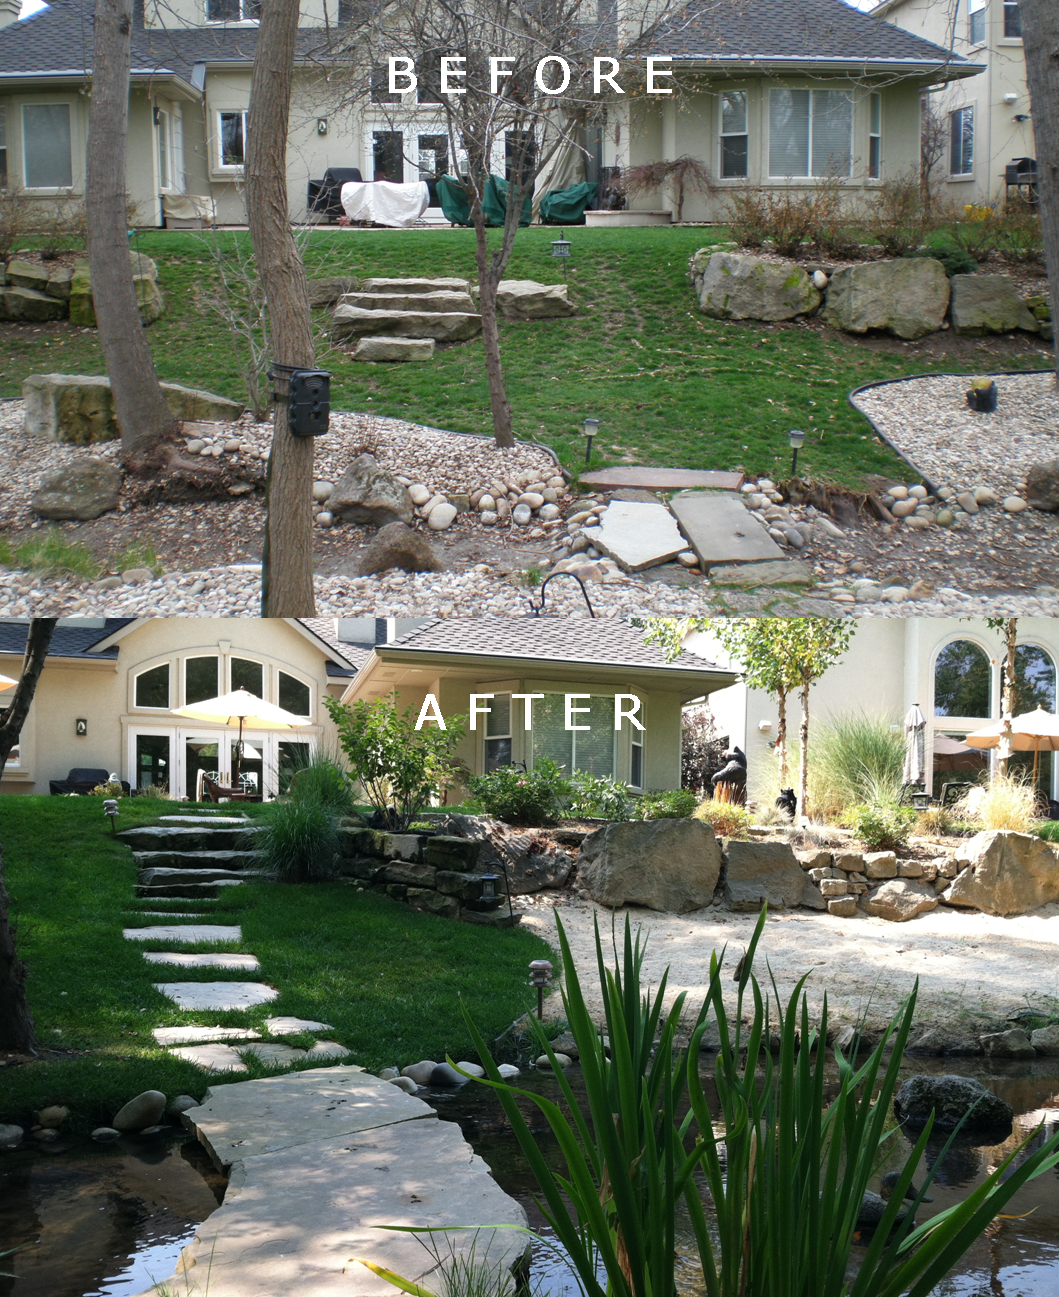 Hill Residence: Before/After | The Garden Artist Boise, ID